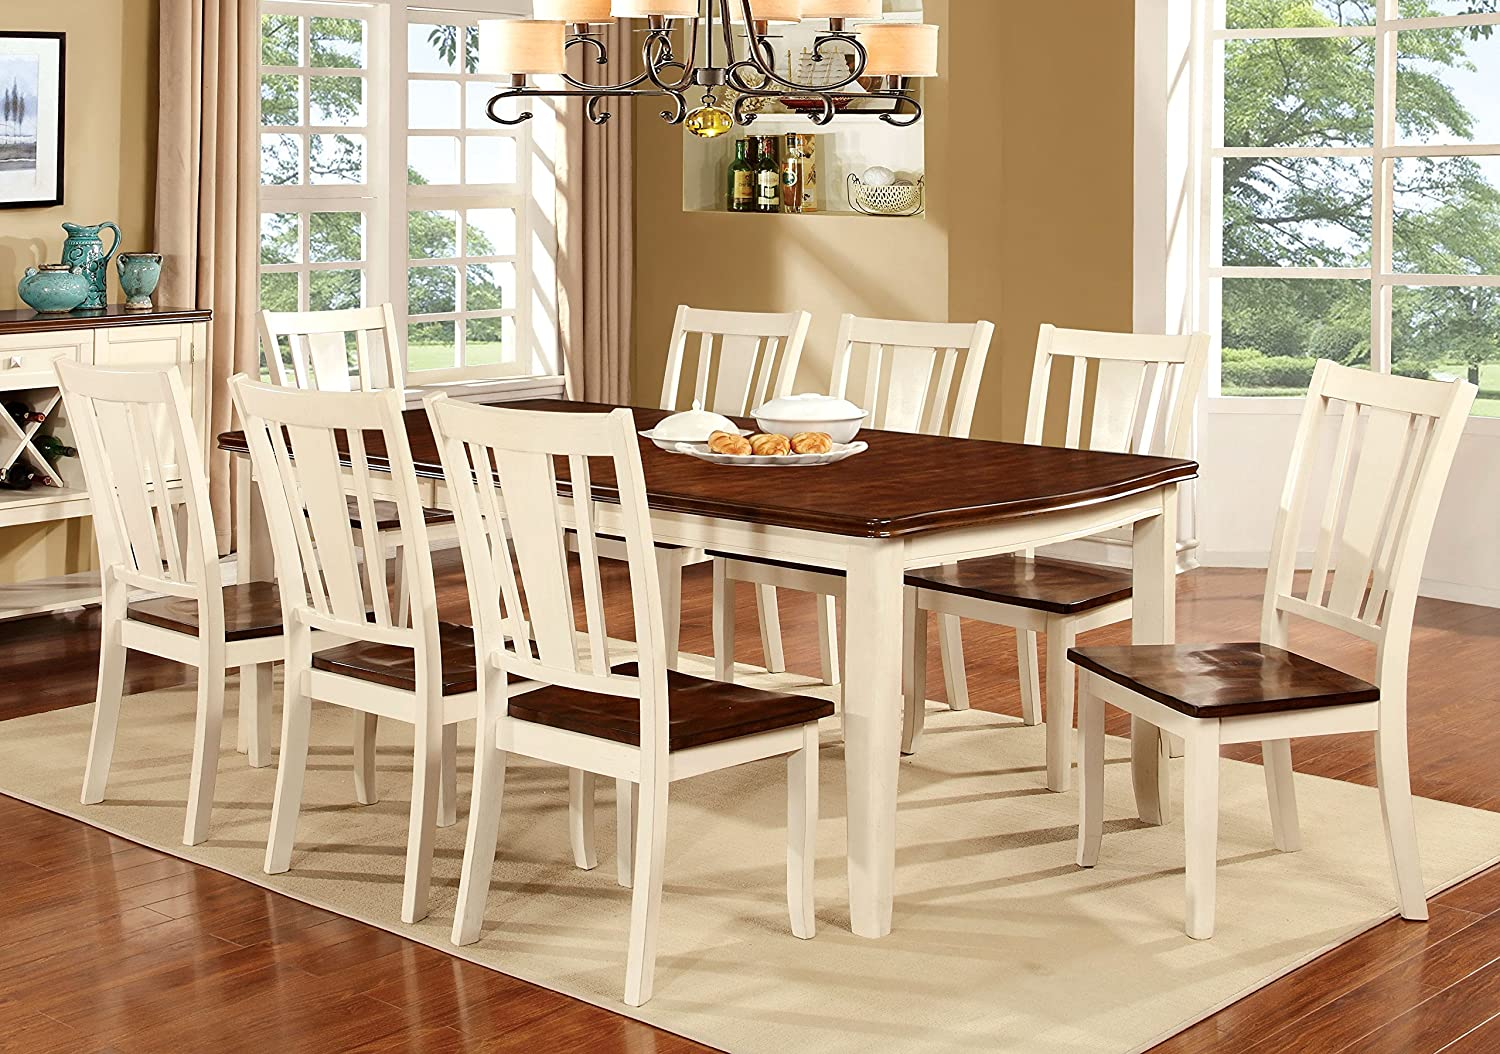 Merveilleux Amazon.com: Furniture Of America Macchio 9 Piece Transitional Dining Set,  Cherry/Vintage White: Kitchen U0026 Dining